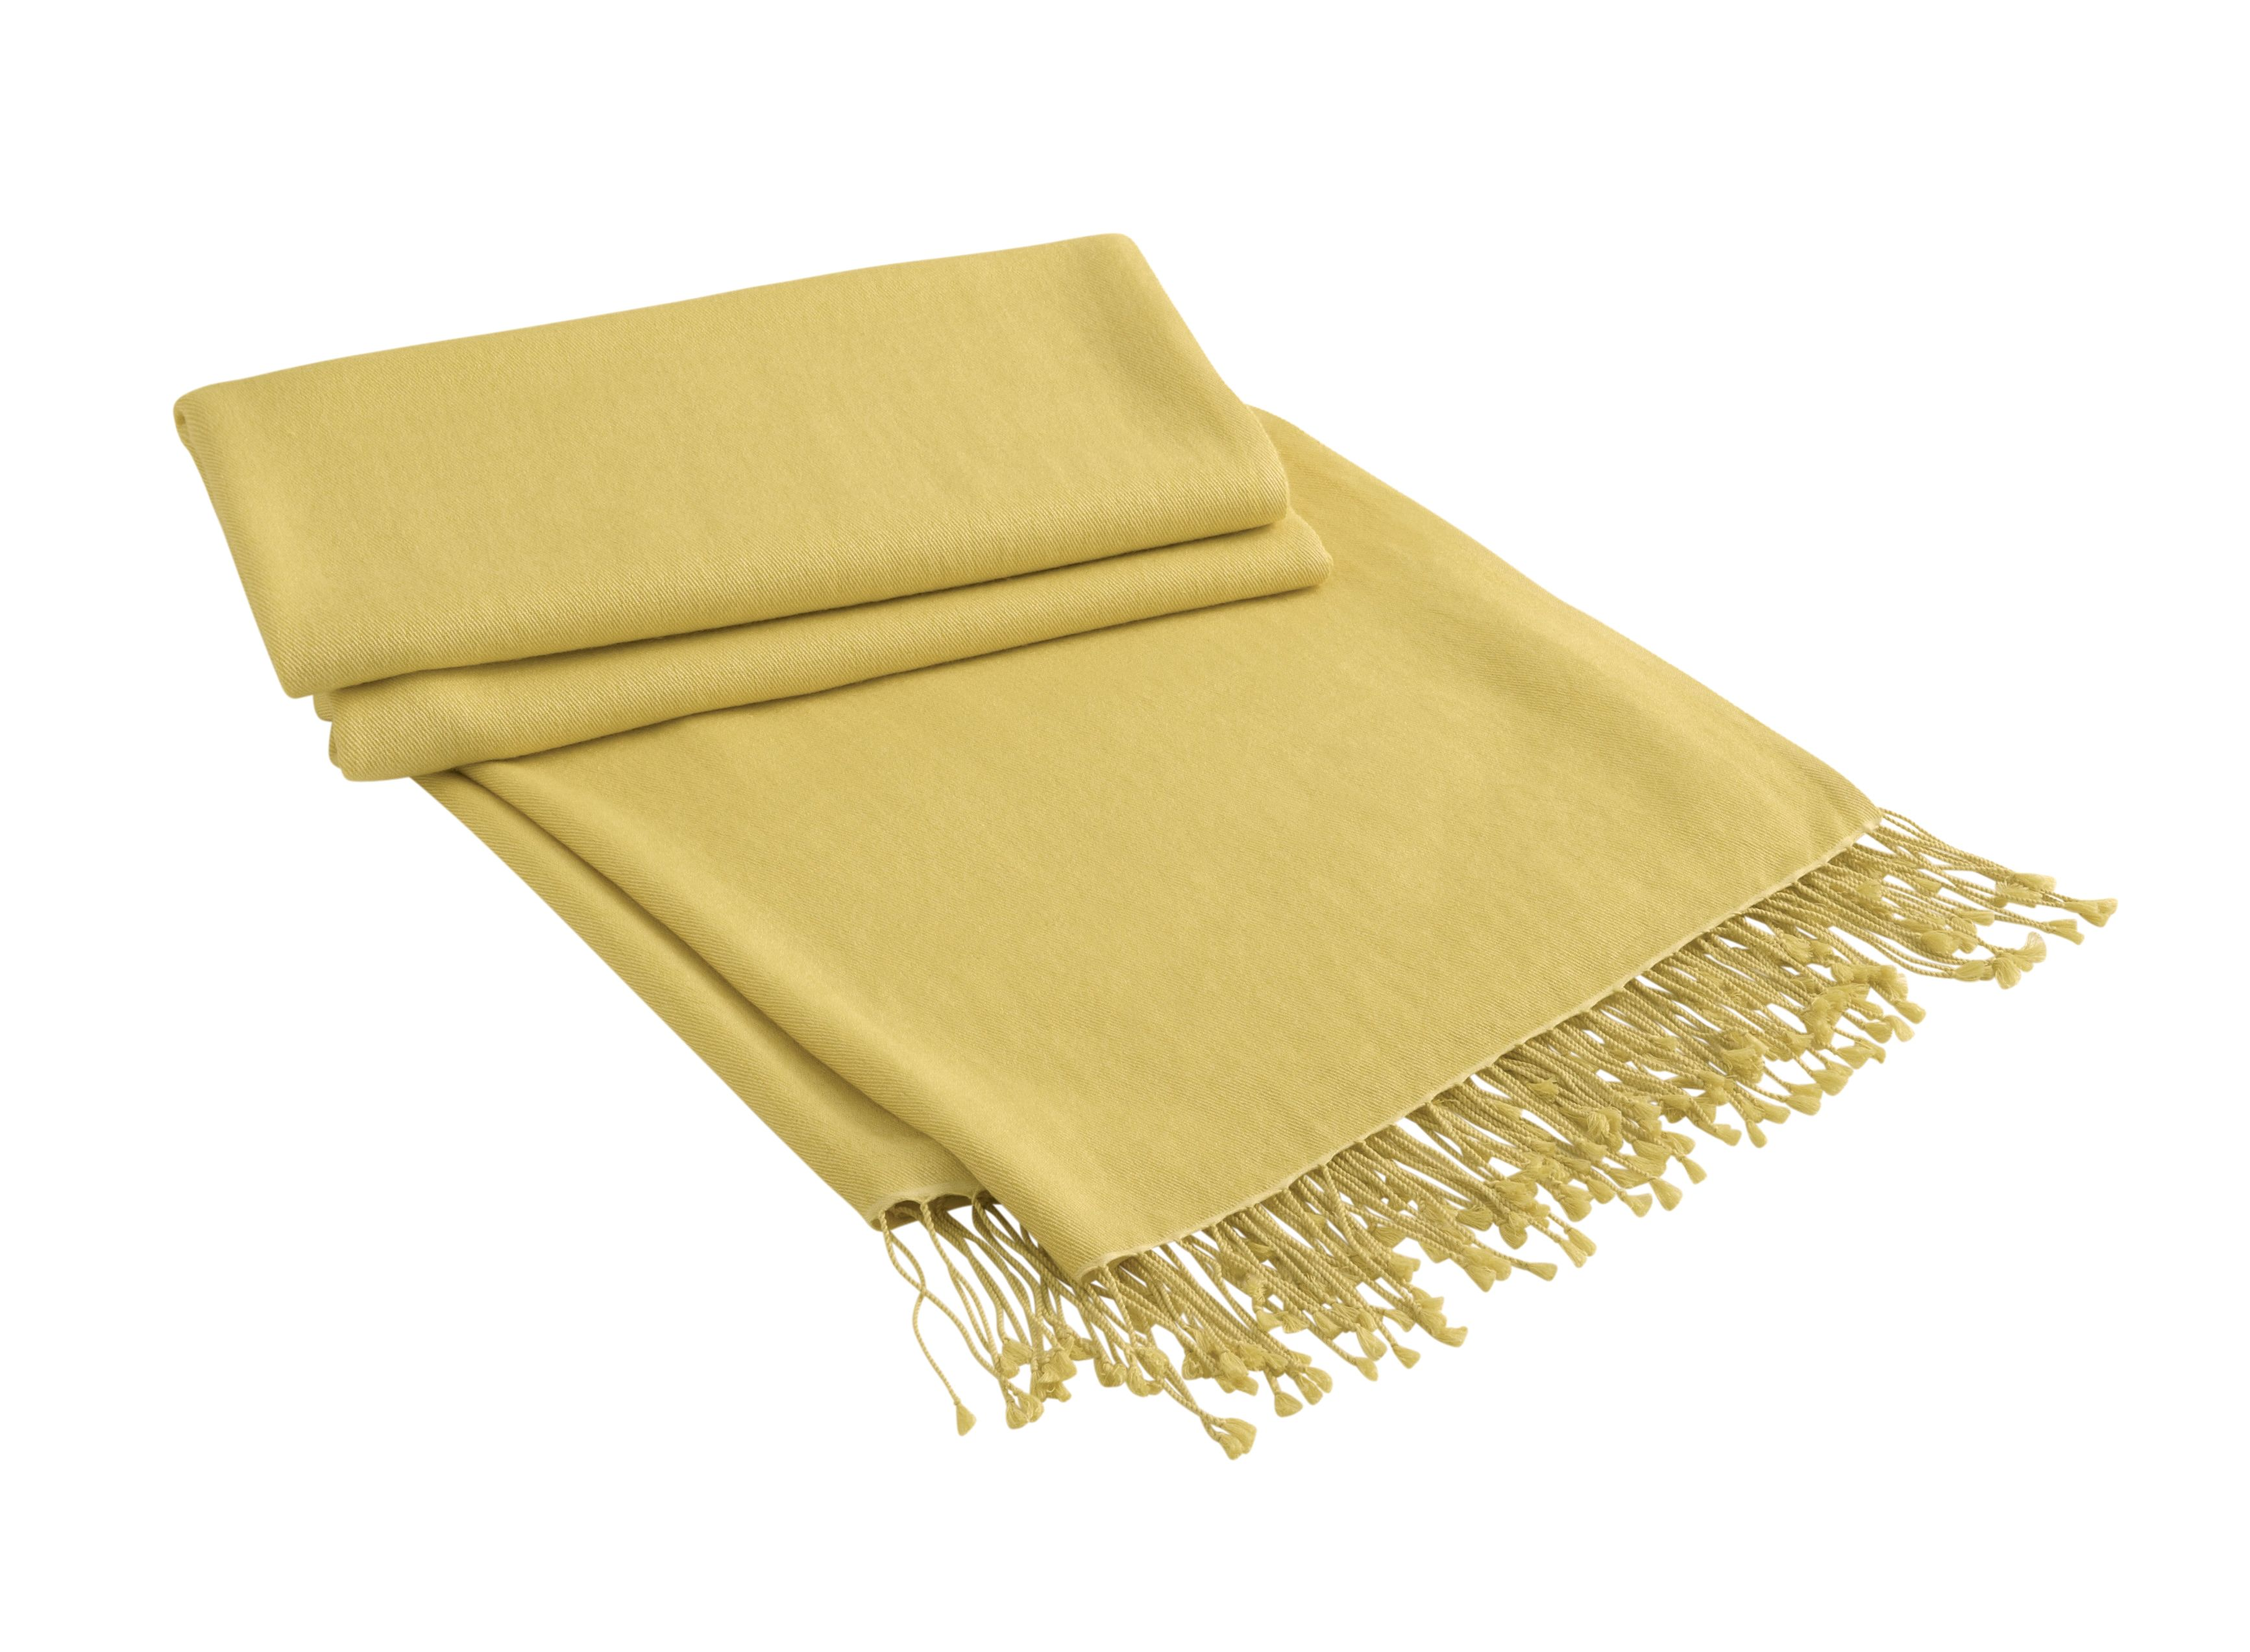 Solstice jaune throw 130x180*